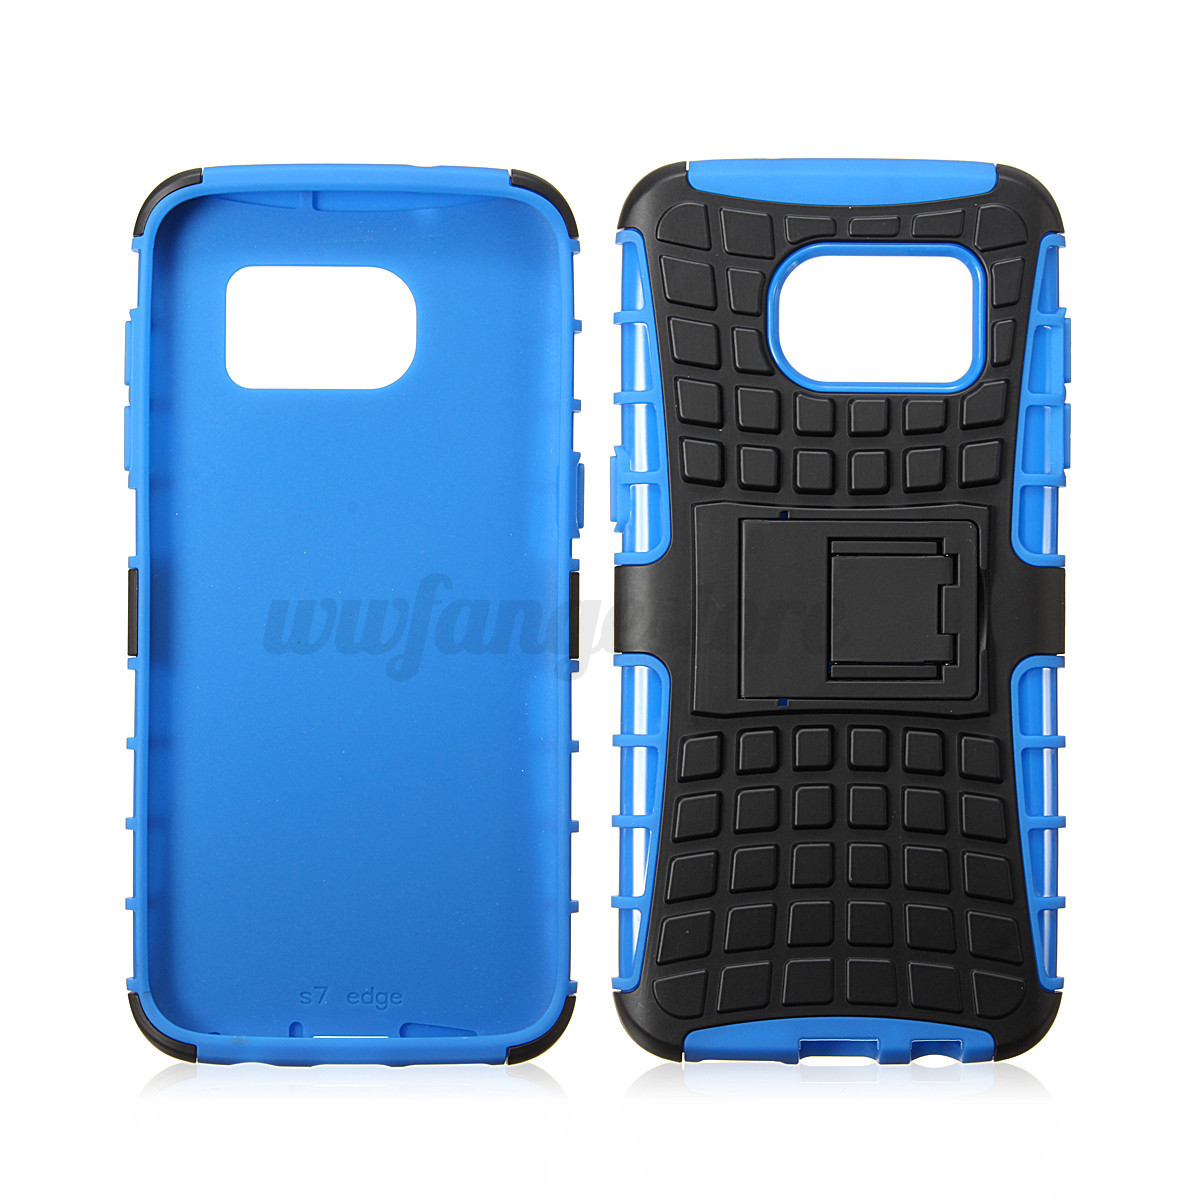 Double couche silicone pc etui coque housse support pour for Housse galaxy s7